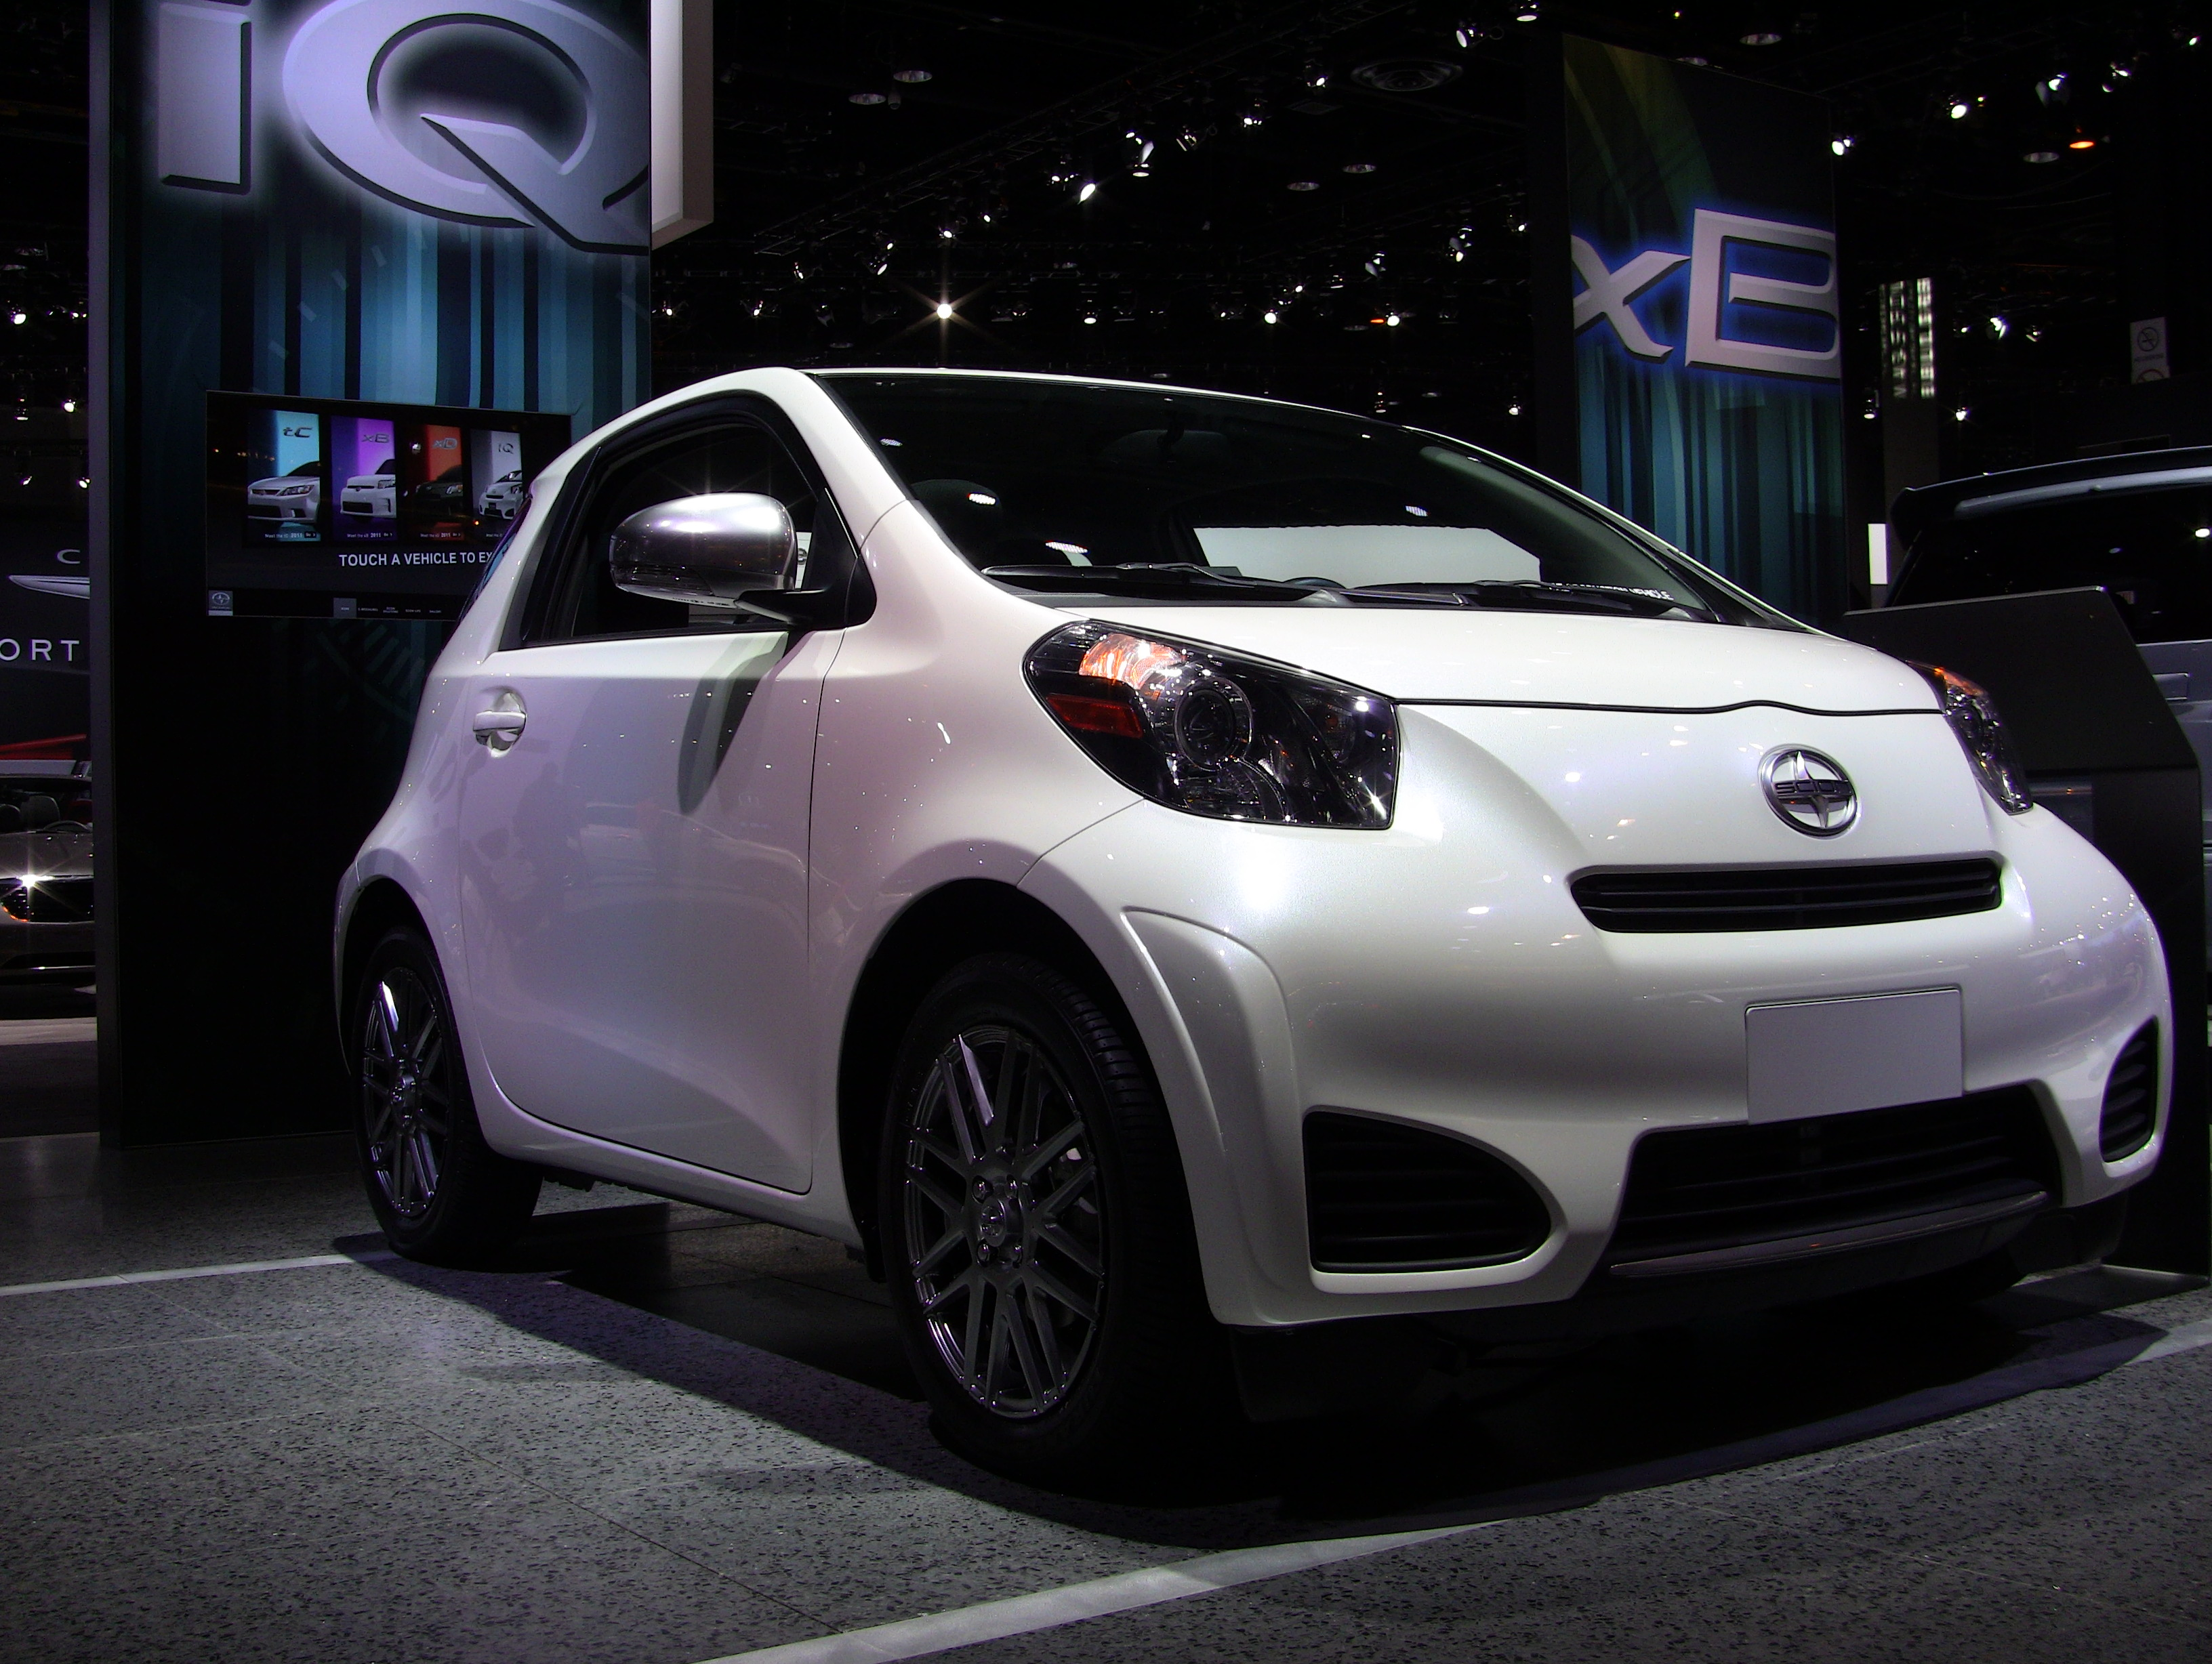 Imagine A Funky Chunky White Guy Snuggled In Tiny Scion Iq Just As Pleased Punch He Smiles At You